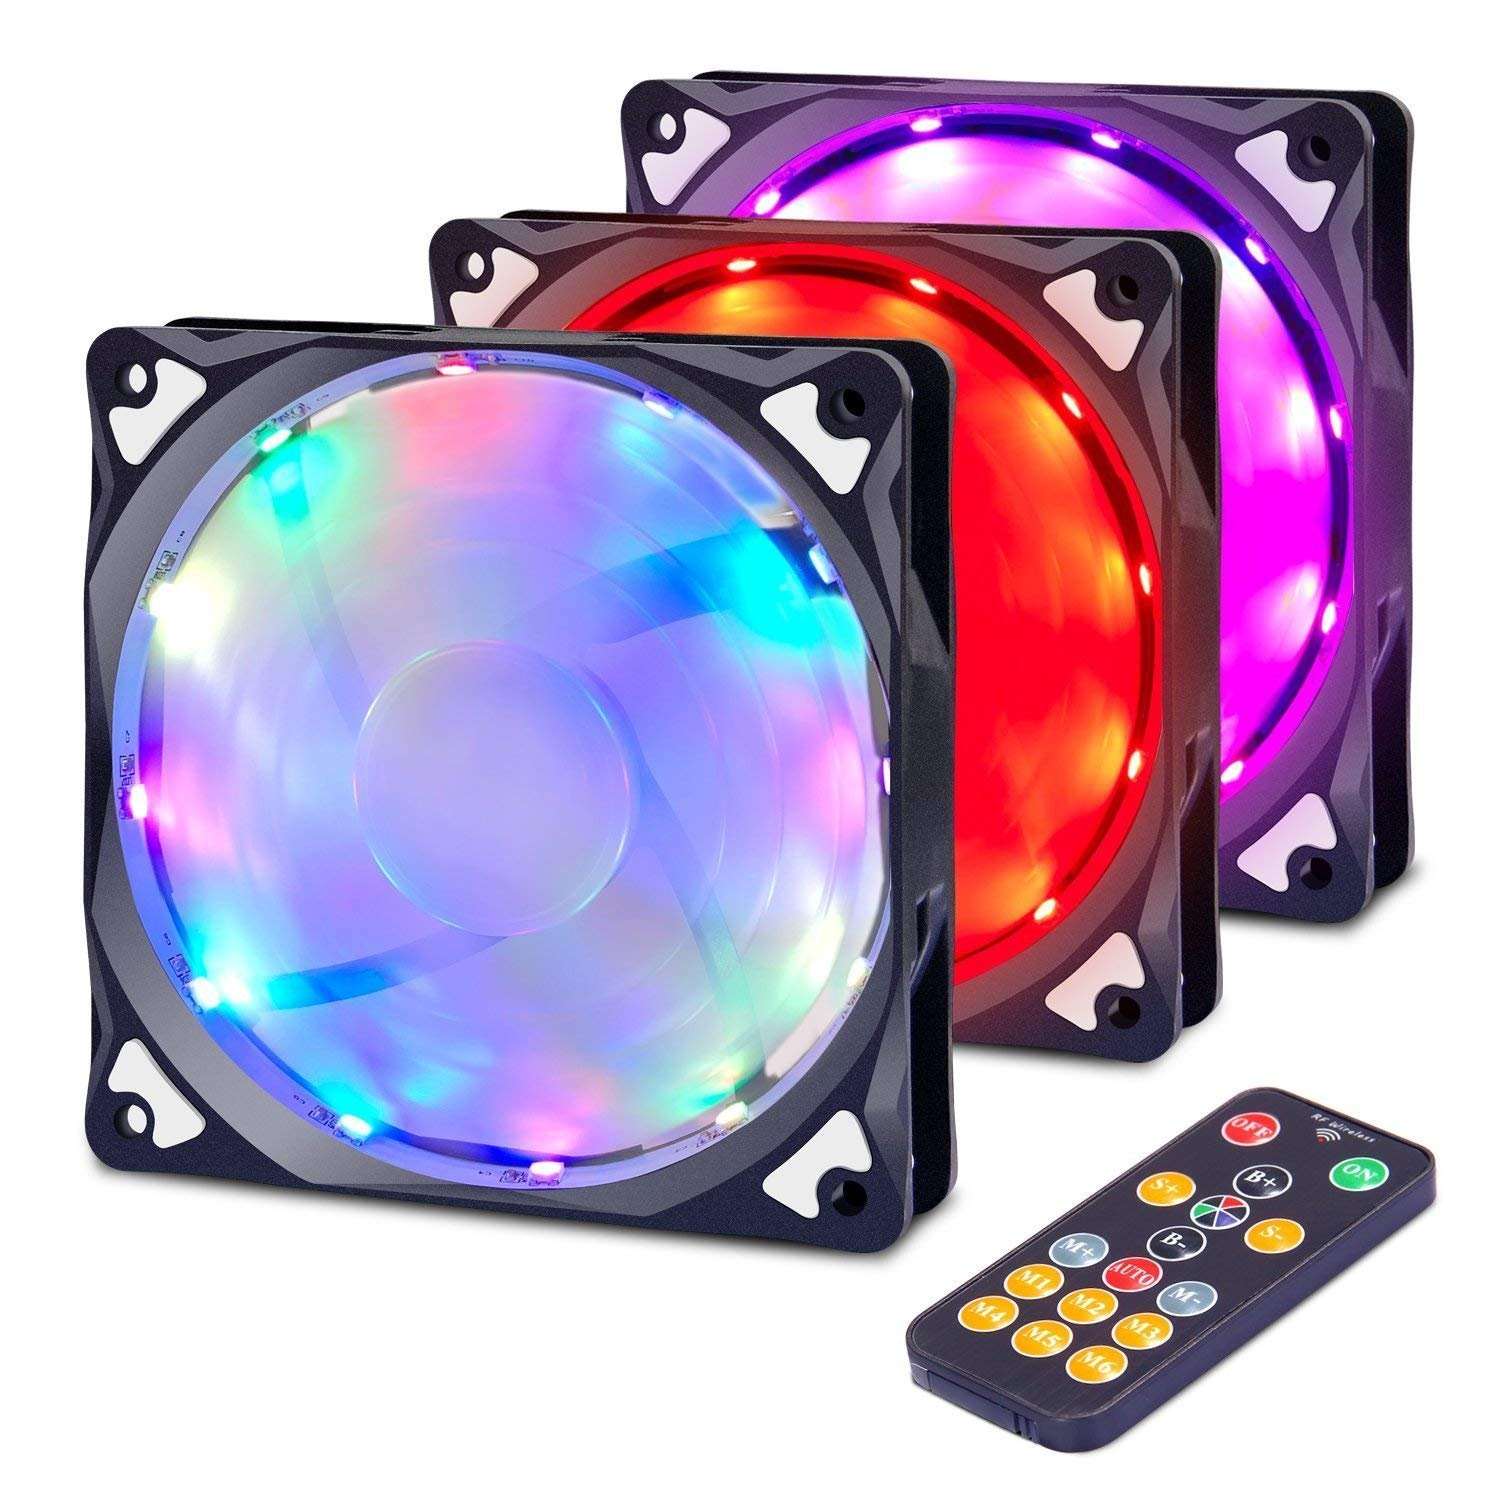 Computer Case Fan with Remote Control, OxyLED RGB PC LED Case Fans Light CPU Cooling Fans, 120mm Radiators Cooler with 7 Single Color Modes and 7 Color-Changing Modes, 3-Pack